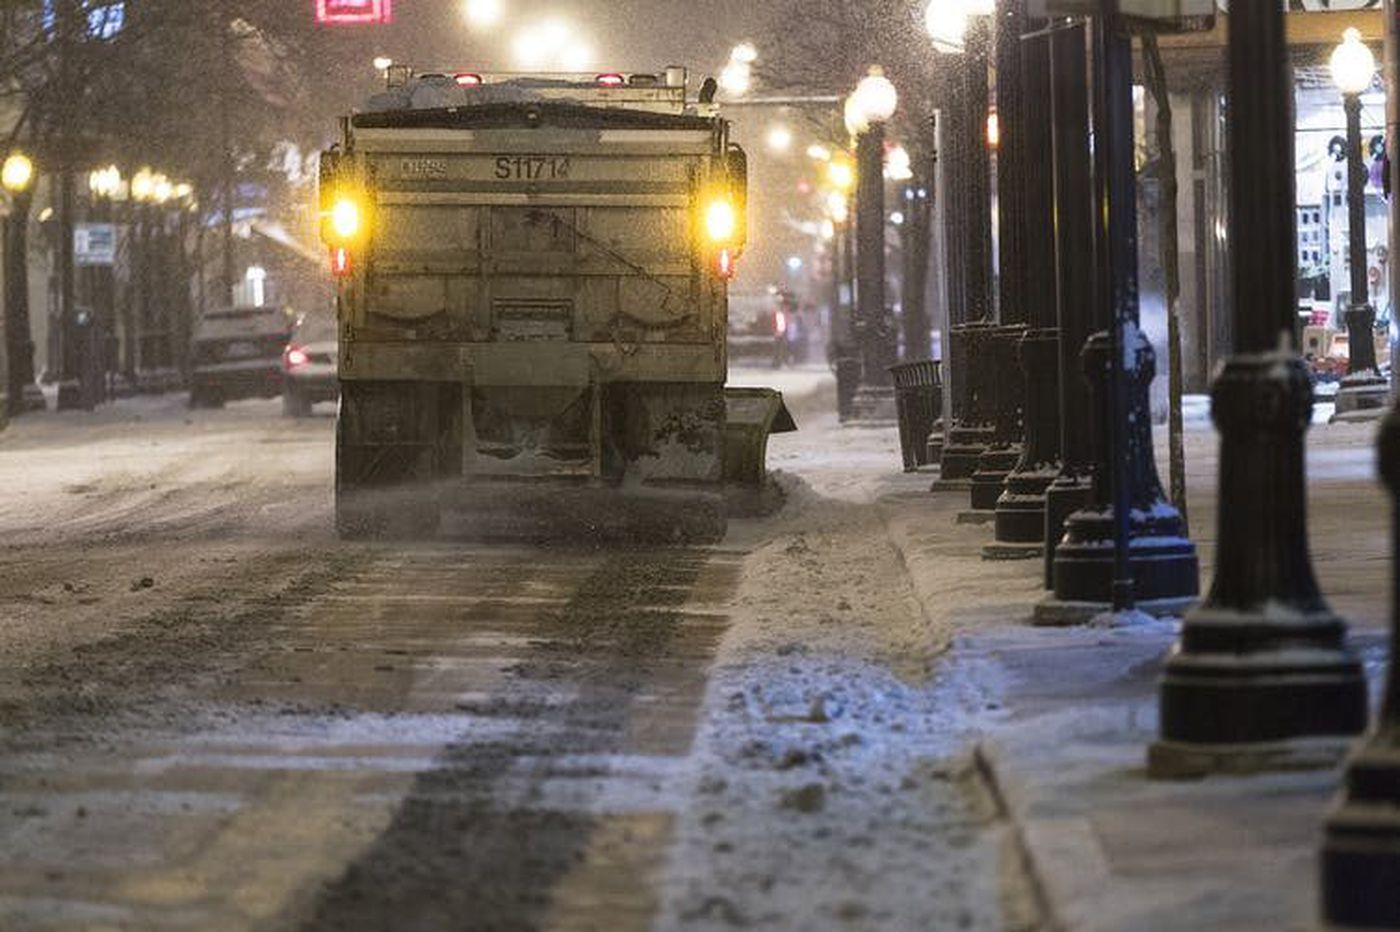 Where will all that road salt go? Into the Delaware River - and that's a concern